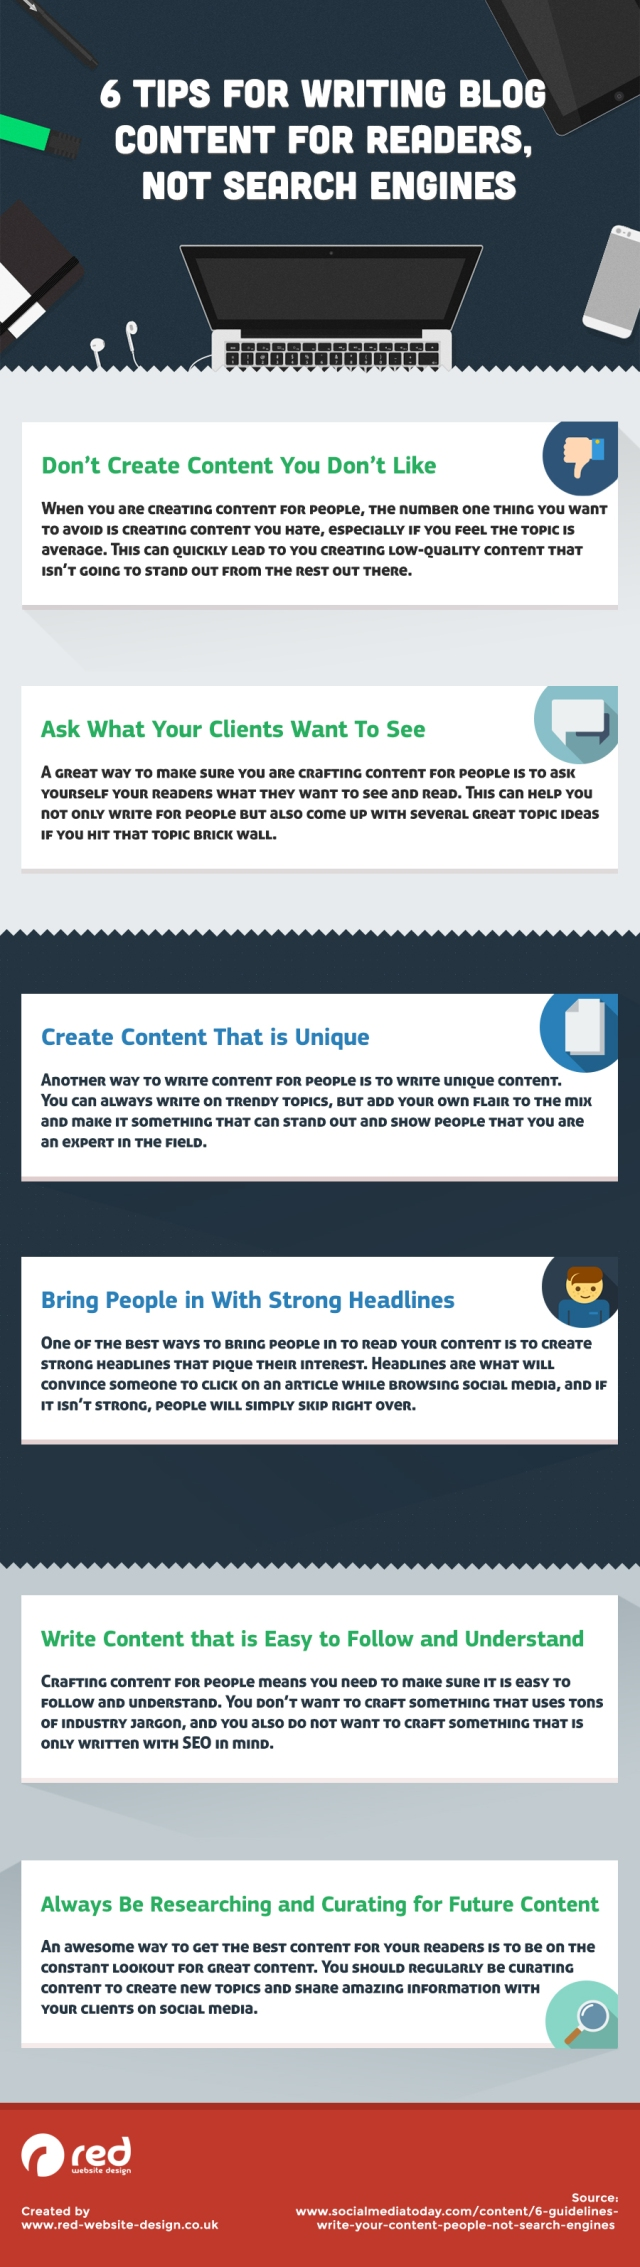 6 Tips for Writing Blog Content for Readers, Not Search Engines